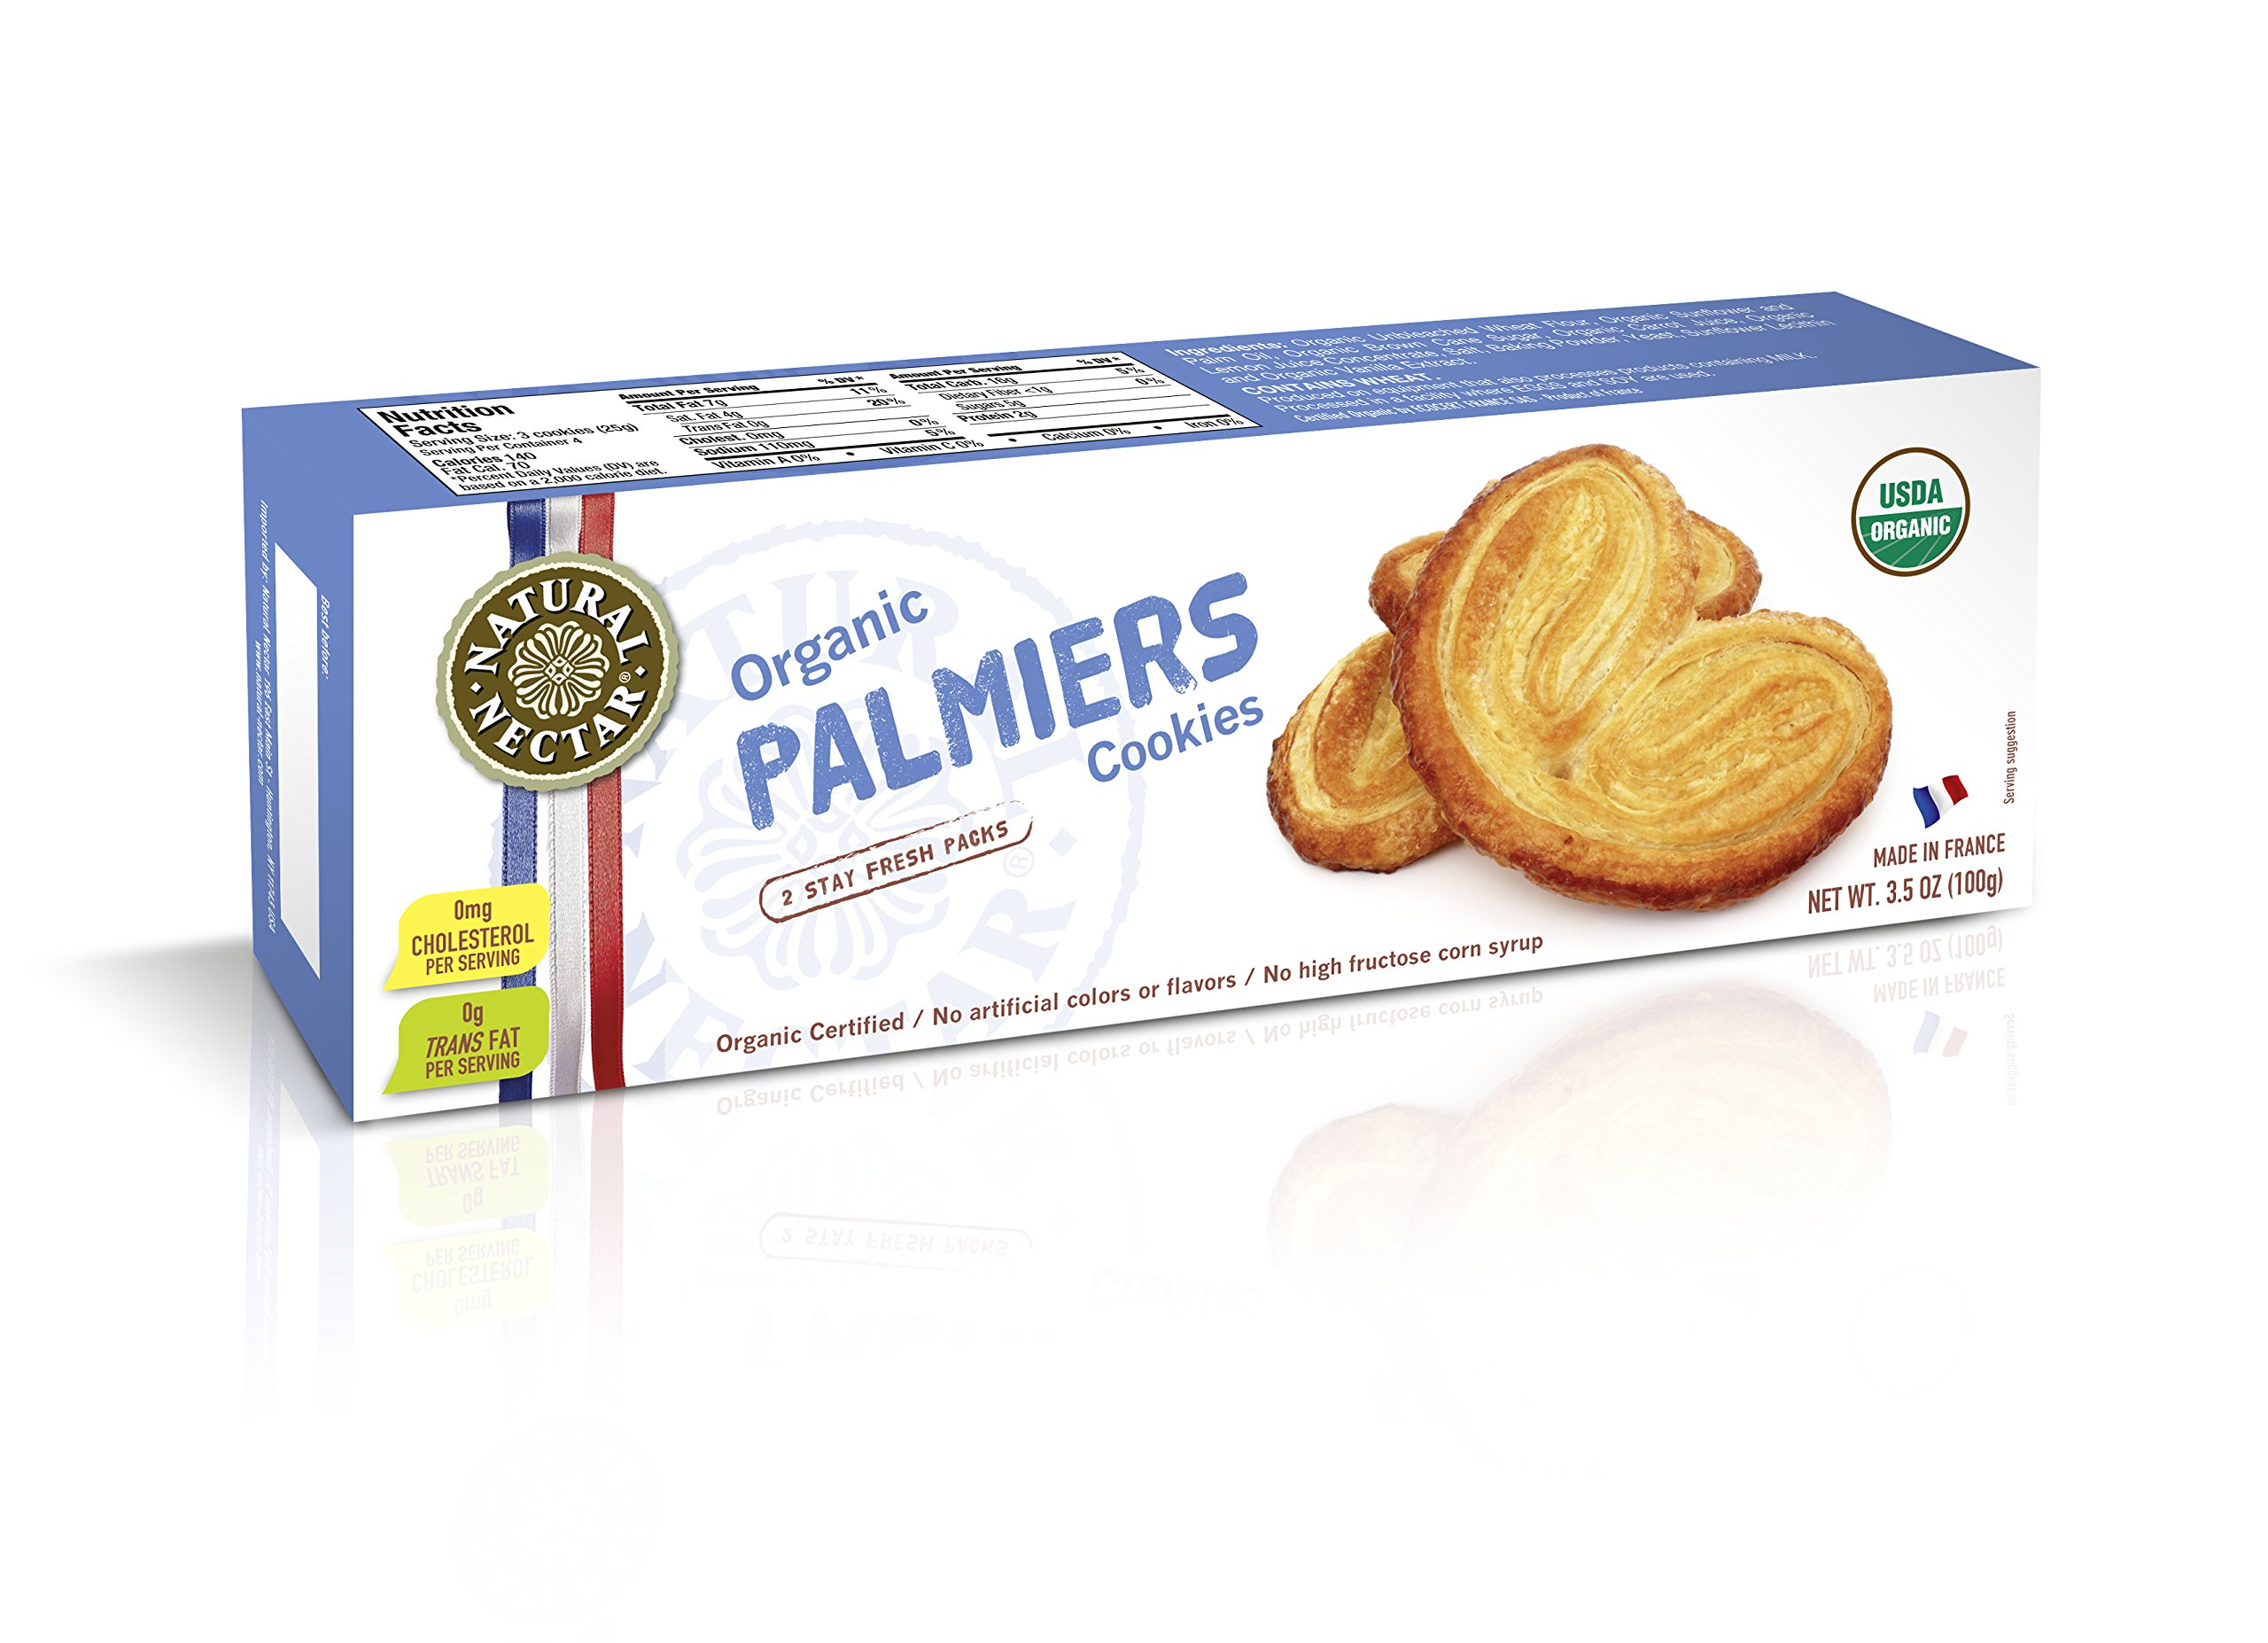 Natural Nectar Palmiers Cookies, 3.5 Ounce (Pack of 12)